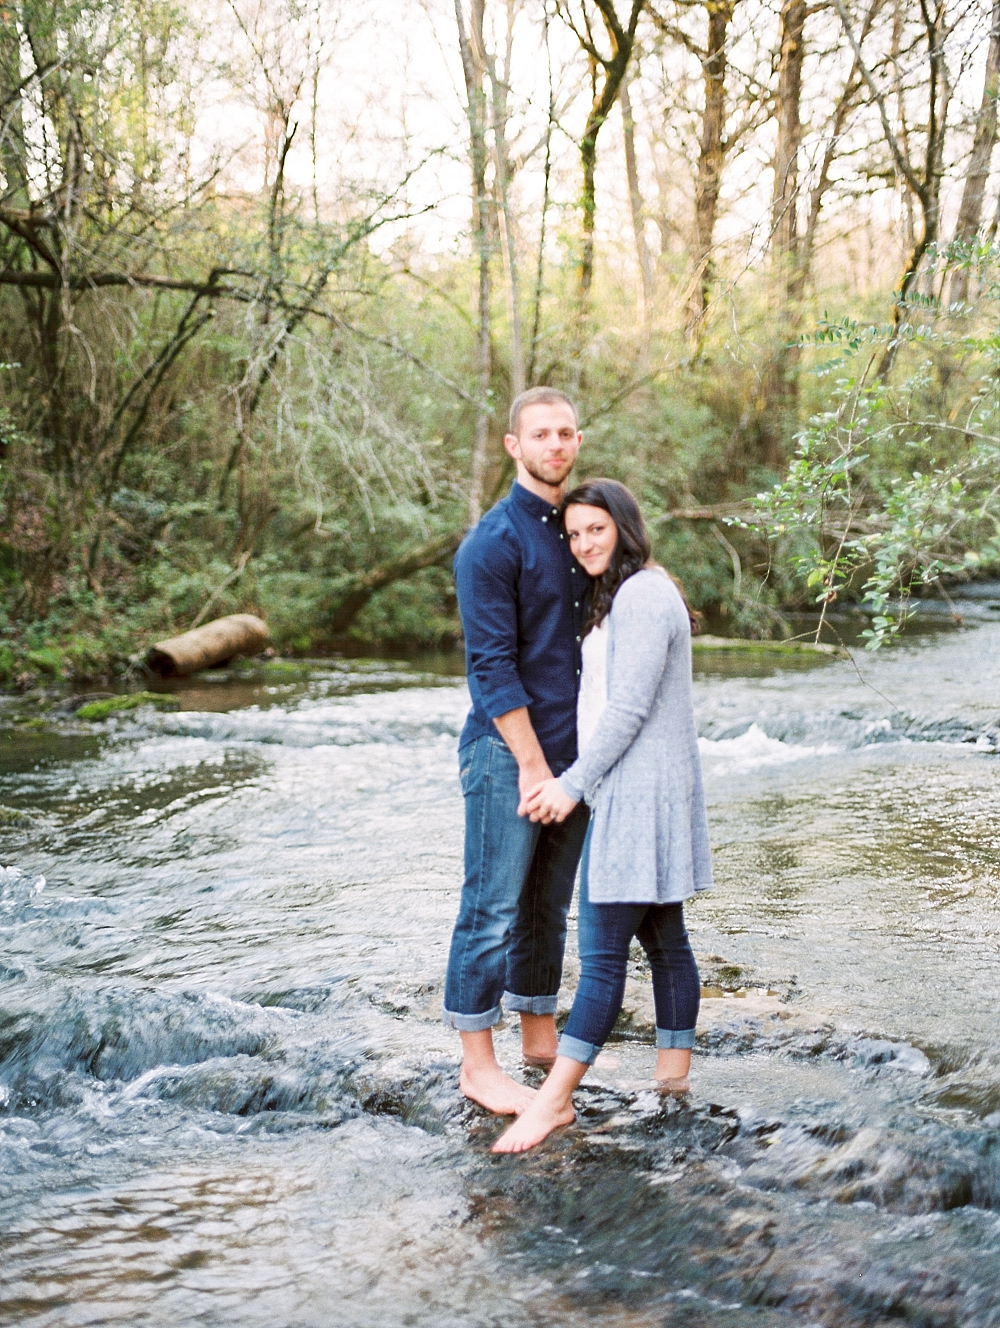 JuicebeatsPhotography_KnoxvilleEngagement_Kristina&Ben_0038.jpg